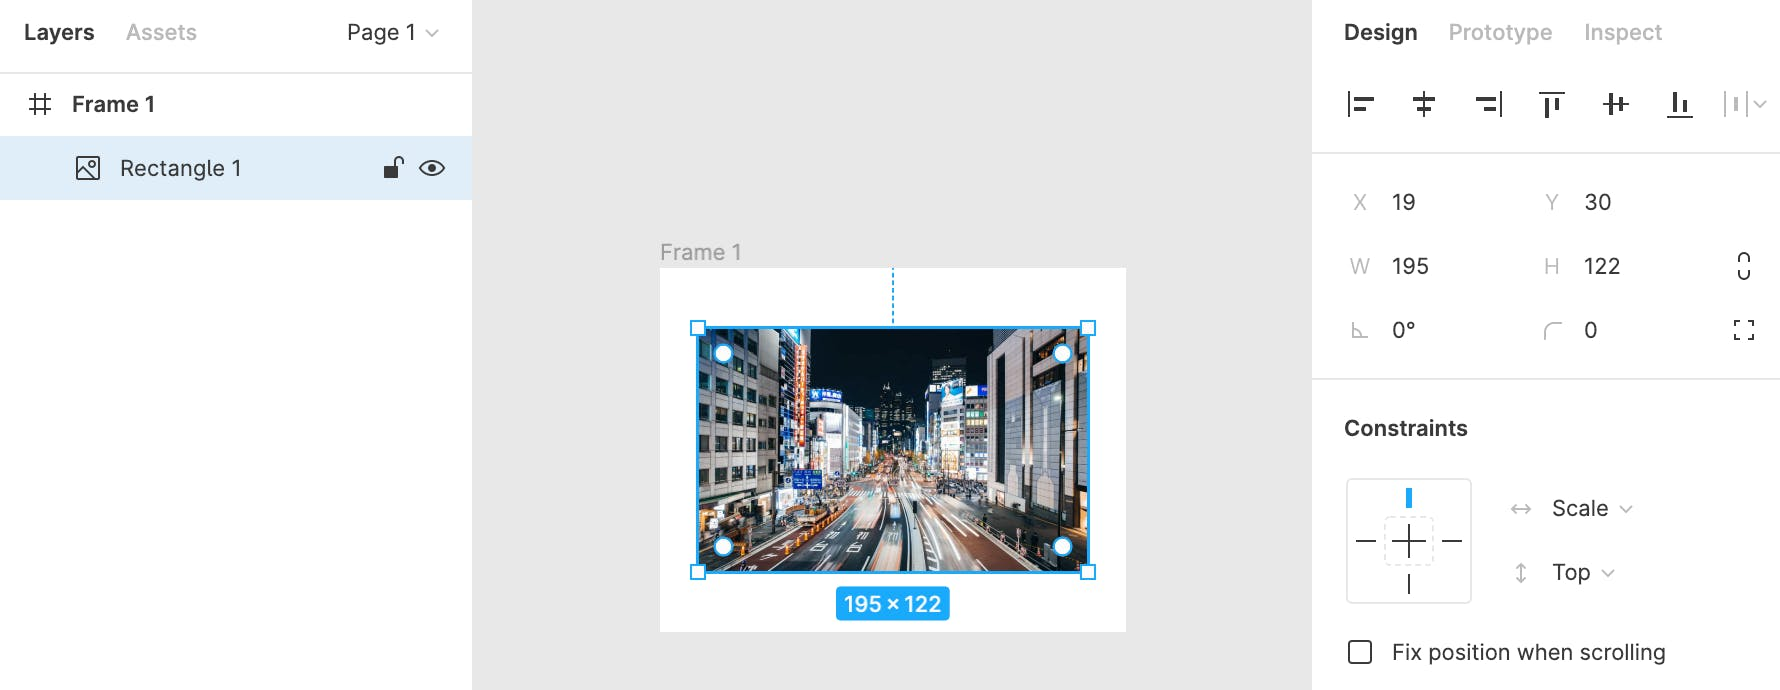 750-figma-auto-layout-constraints_23_scale_01.png